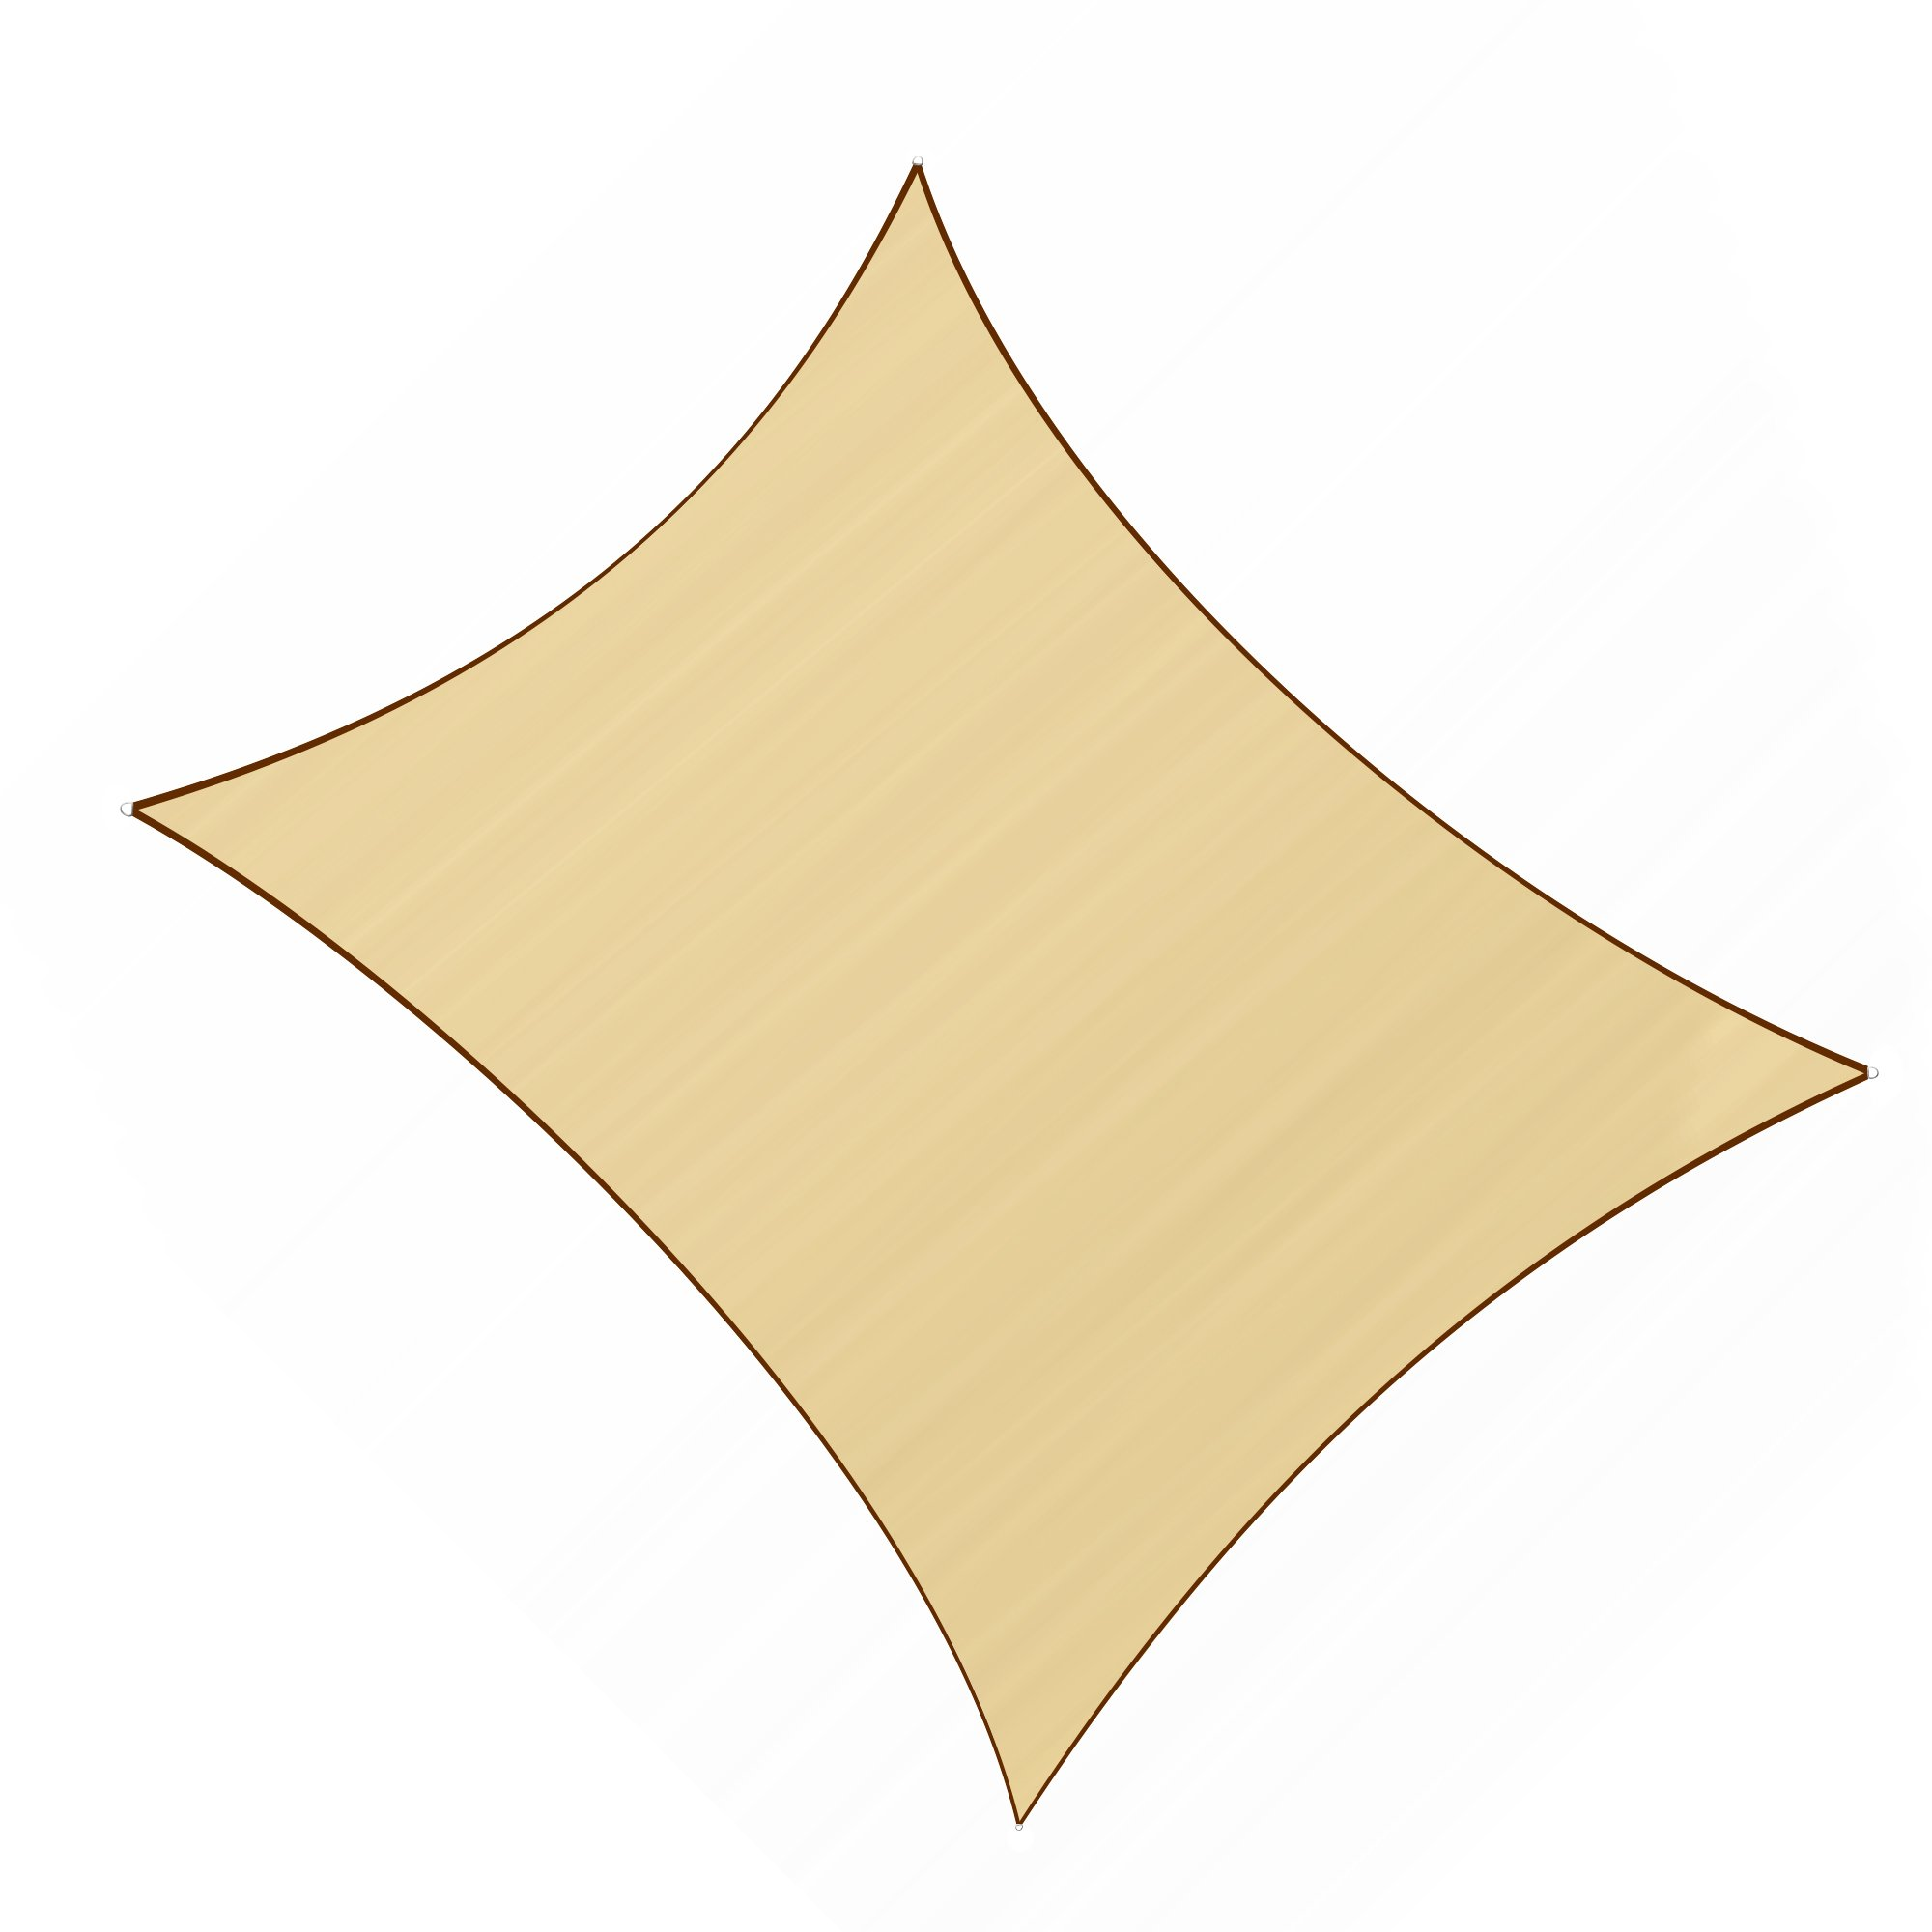 Sunlax 13' x 20' Sand Color Rectangle UV Block Sun Shade Sail Canopy for Patio and Outdoor by Sunlax